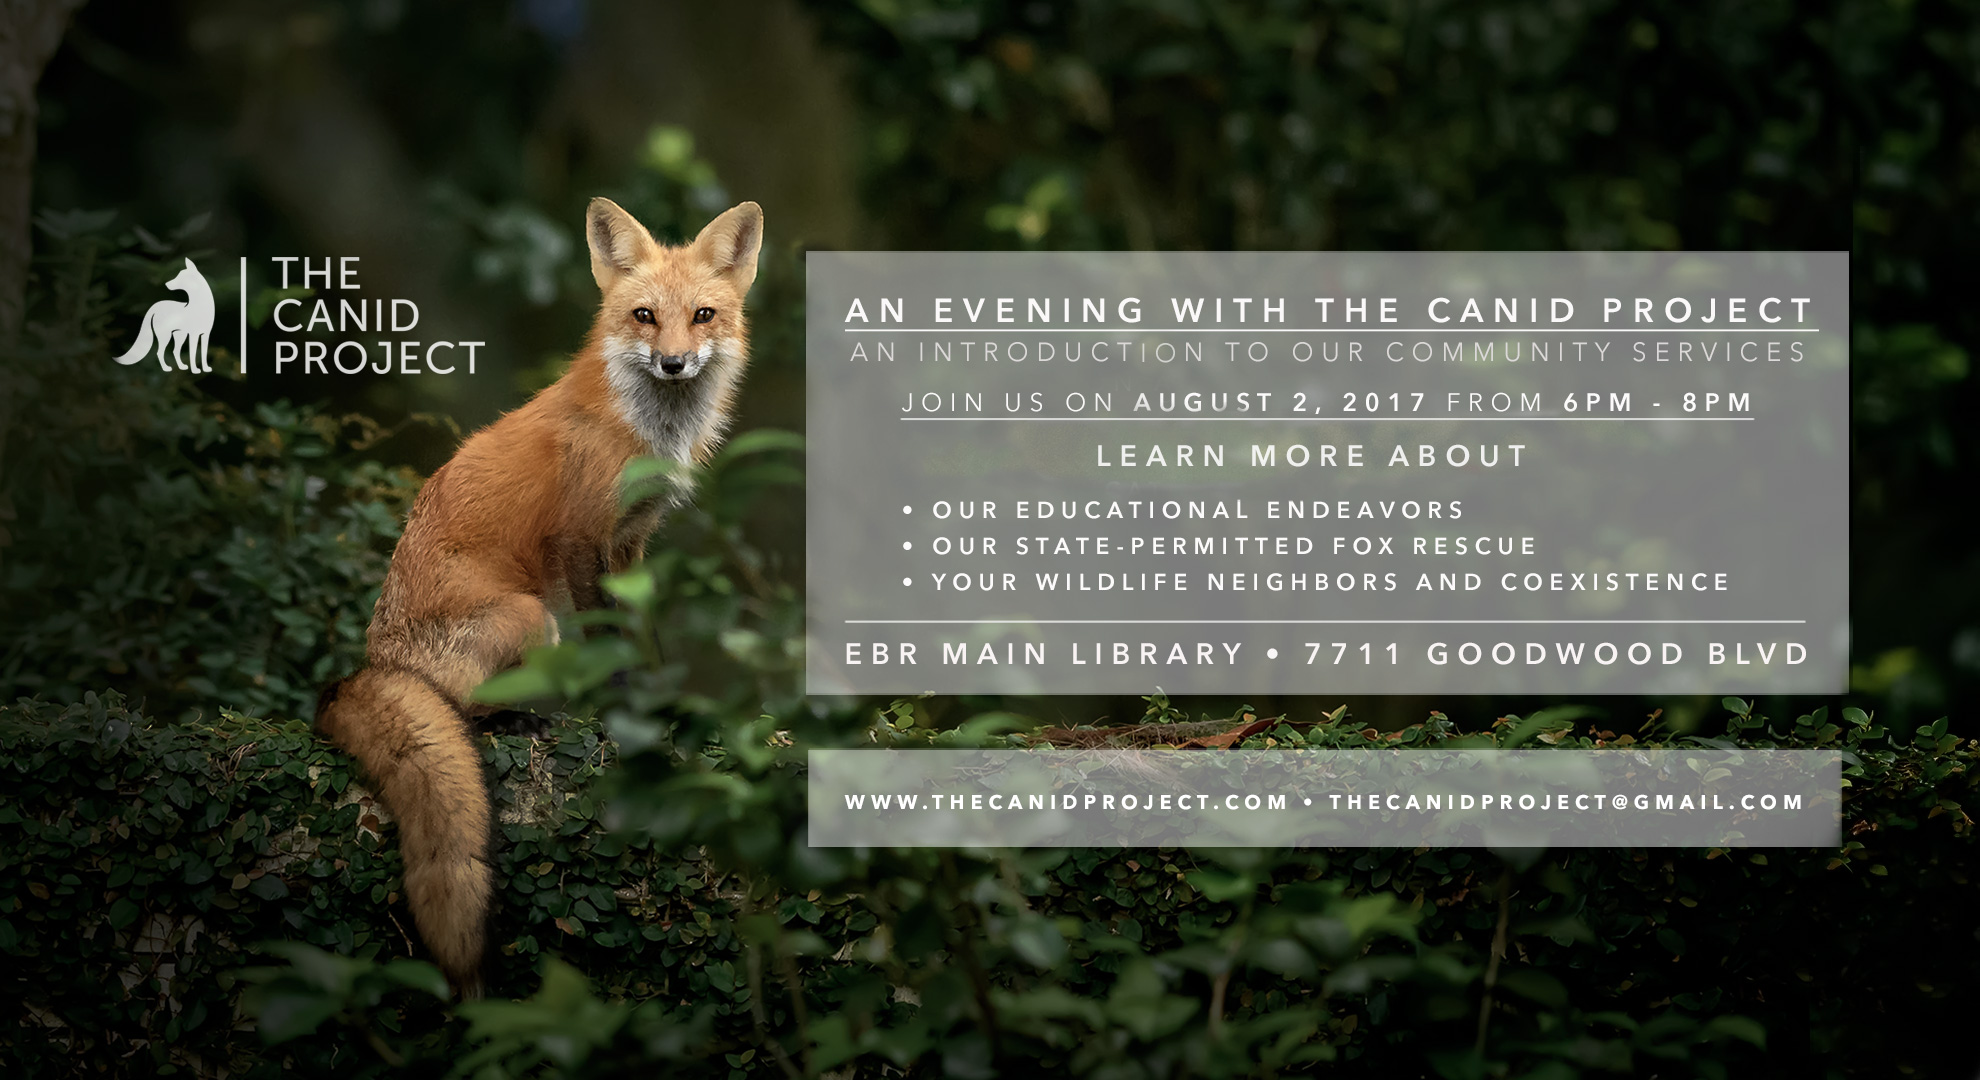 An Evening With The Canid Project - Join us on August 2, 2017 from 6pm to 8pm at the EBR Main Branch Library on Goodwood Blvd in Baton Rouge for an evening introducing this new organization based in Baton Rouge, with work extending across a handful of countries.